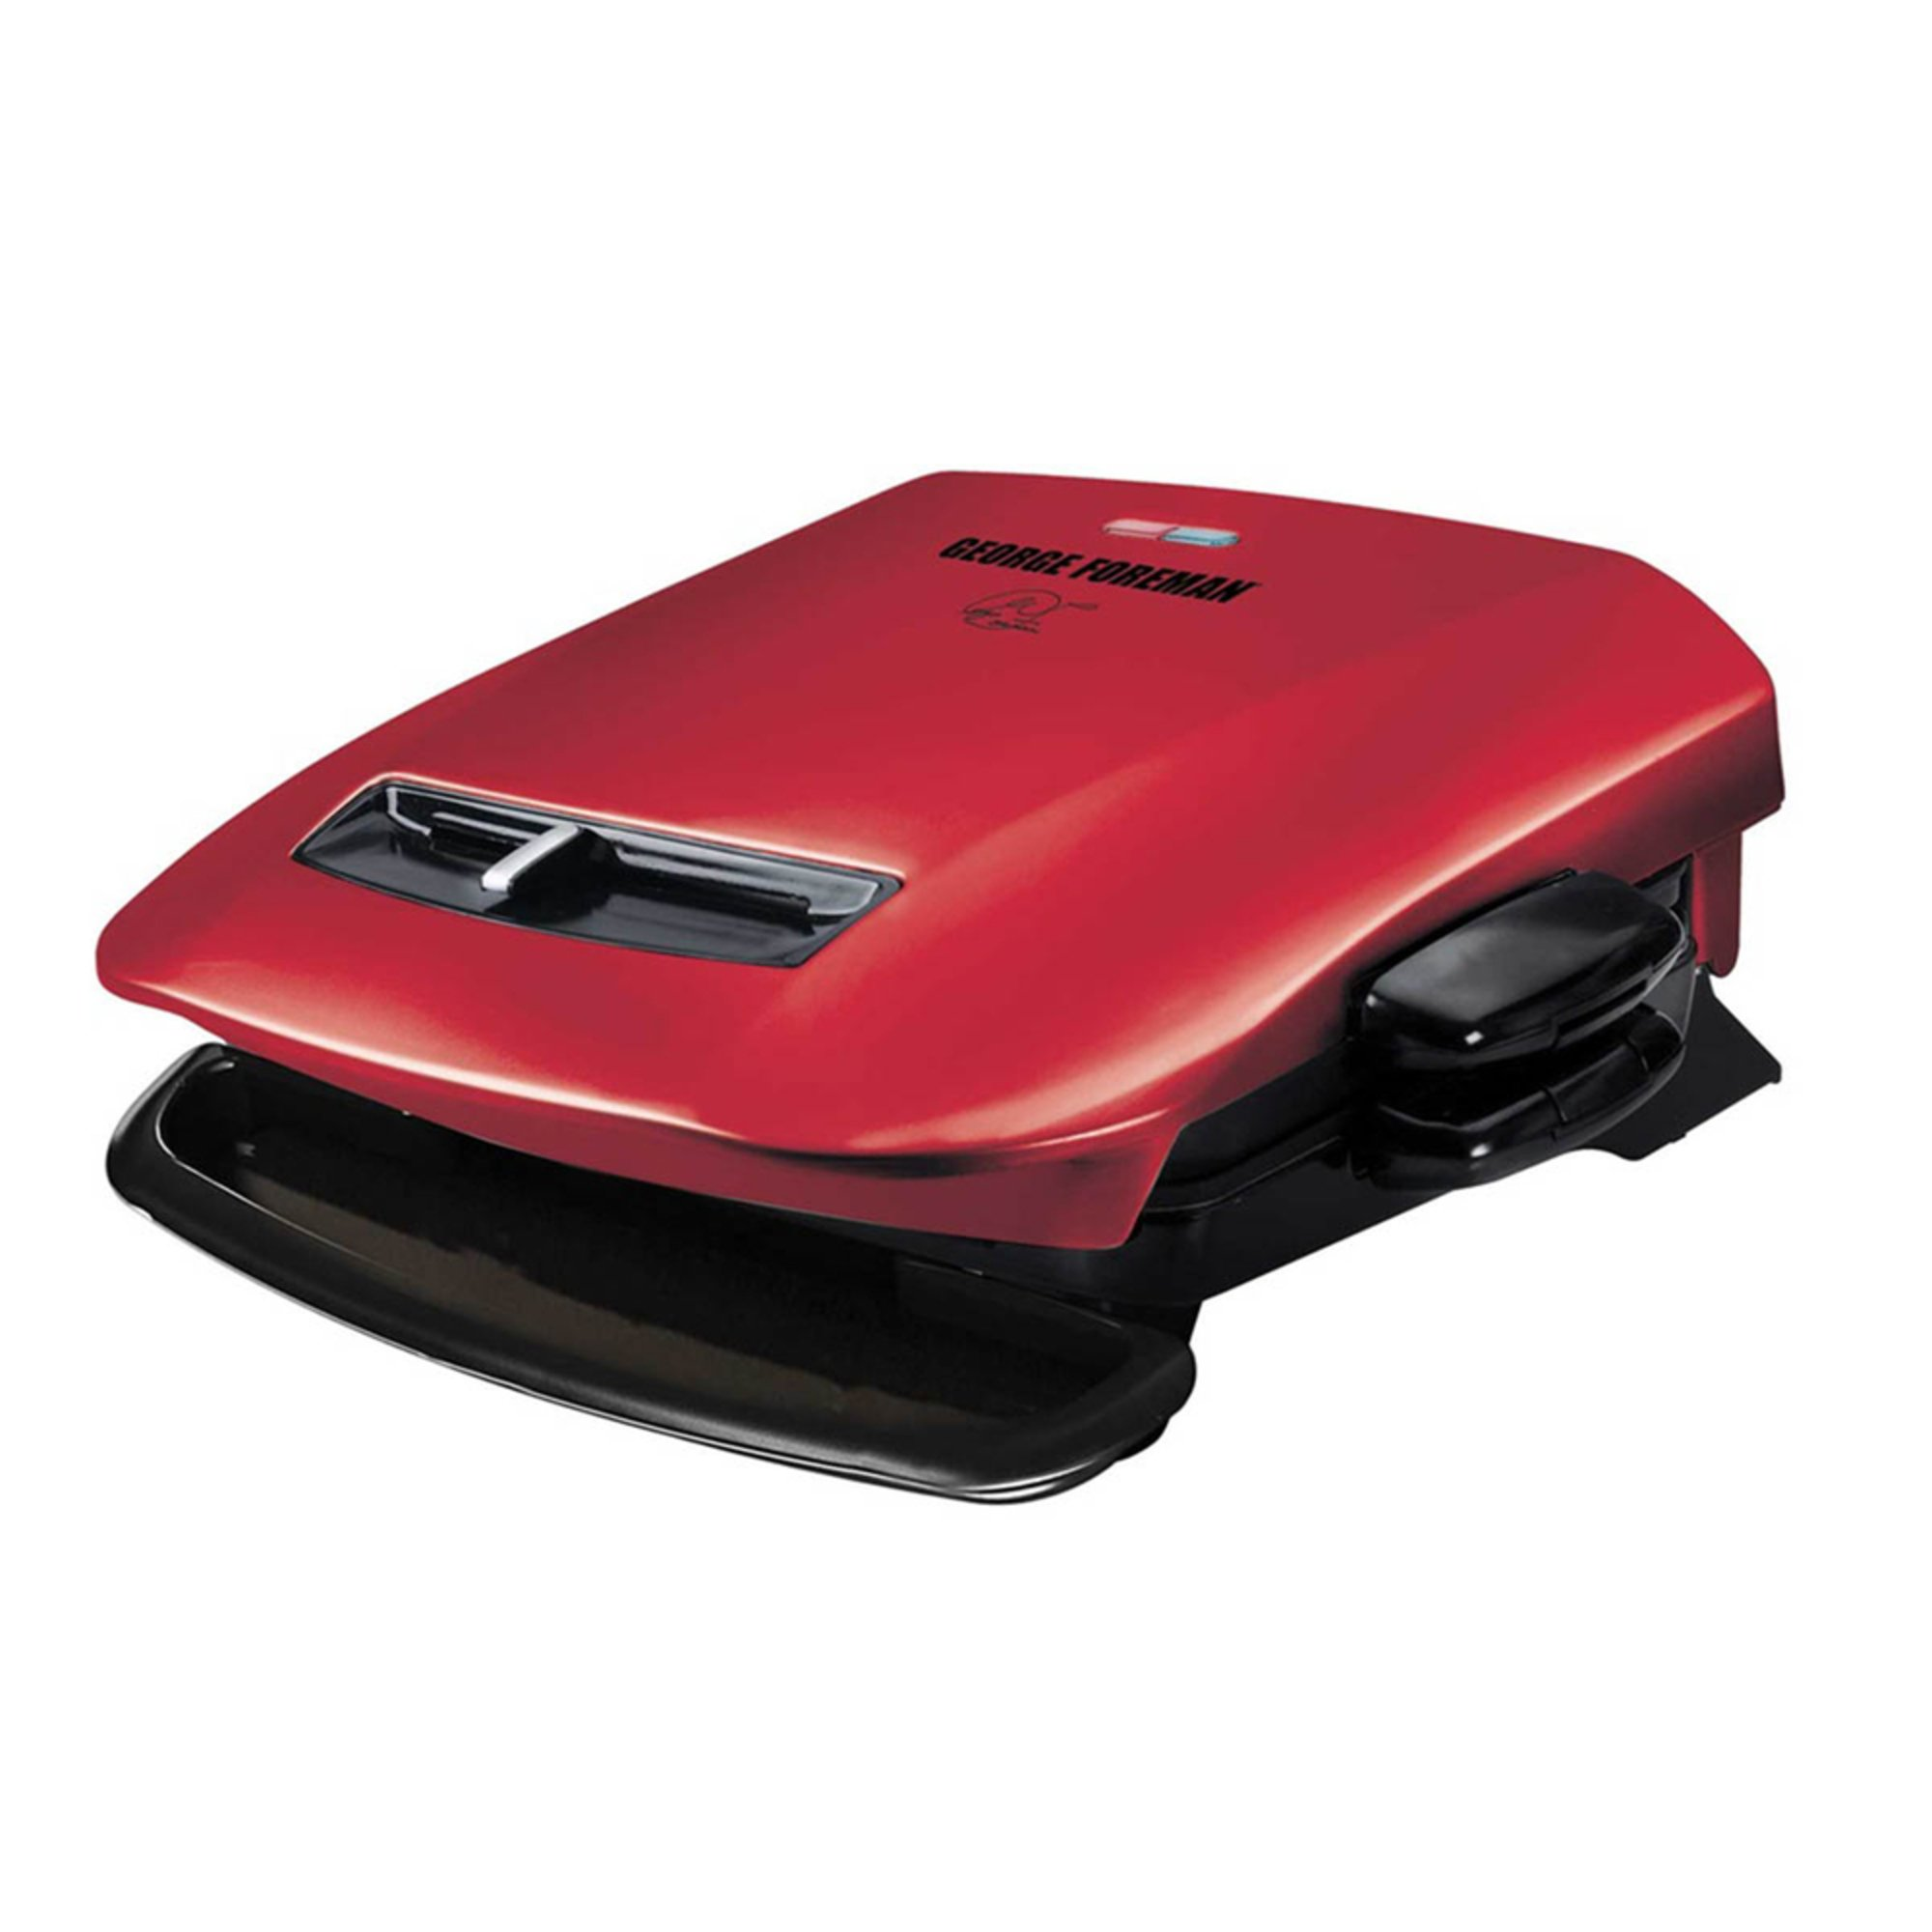 George foreman 5 serving removable plate grill grp2841r - Largest george foreman grill with removable plates ...